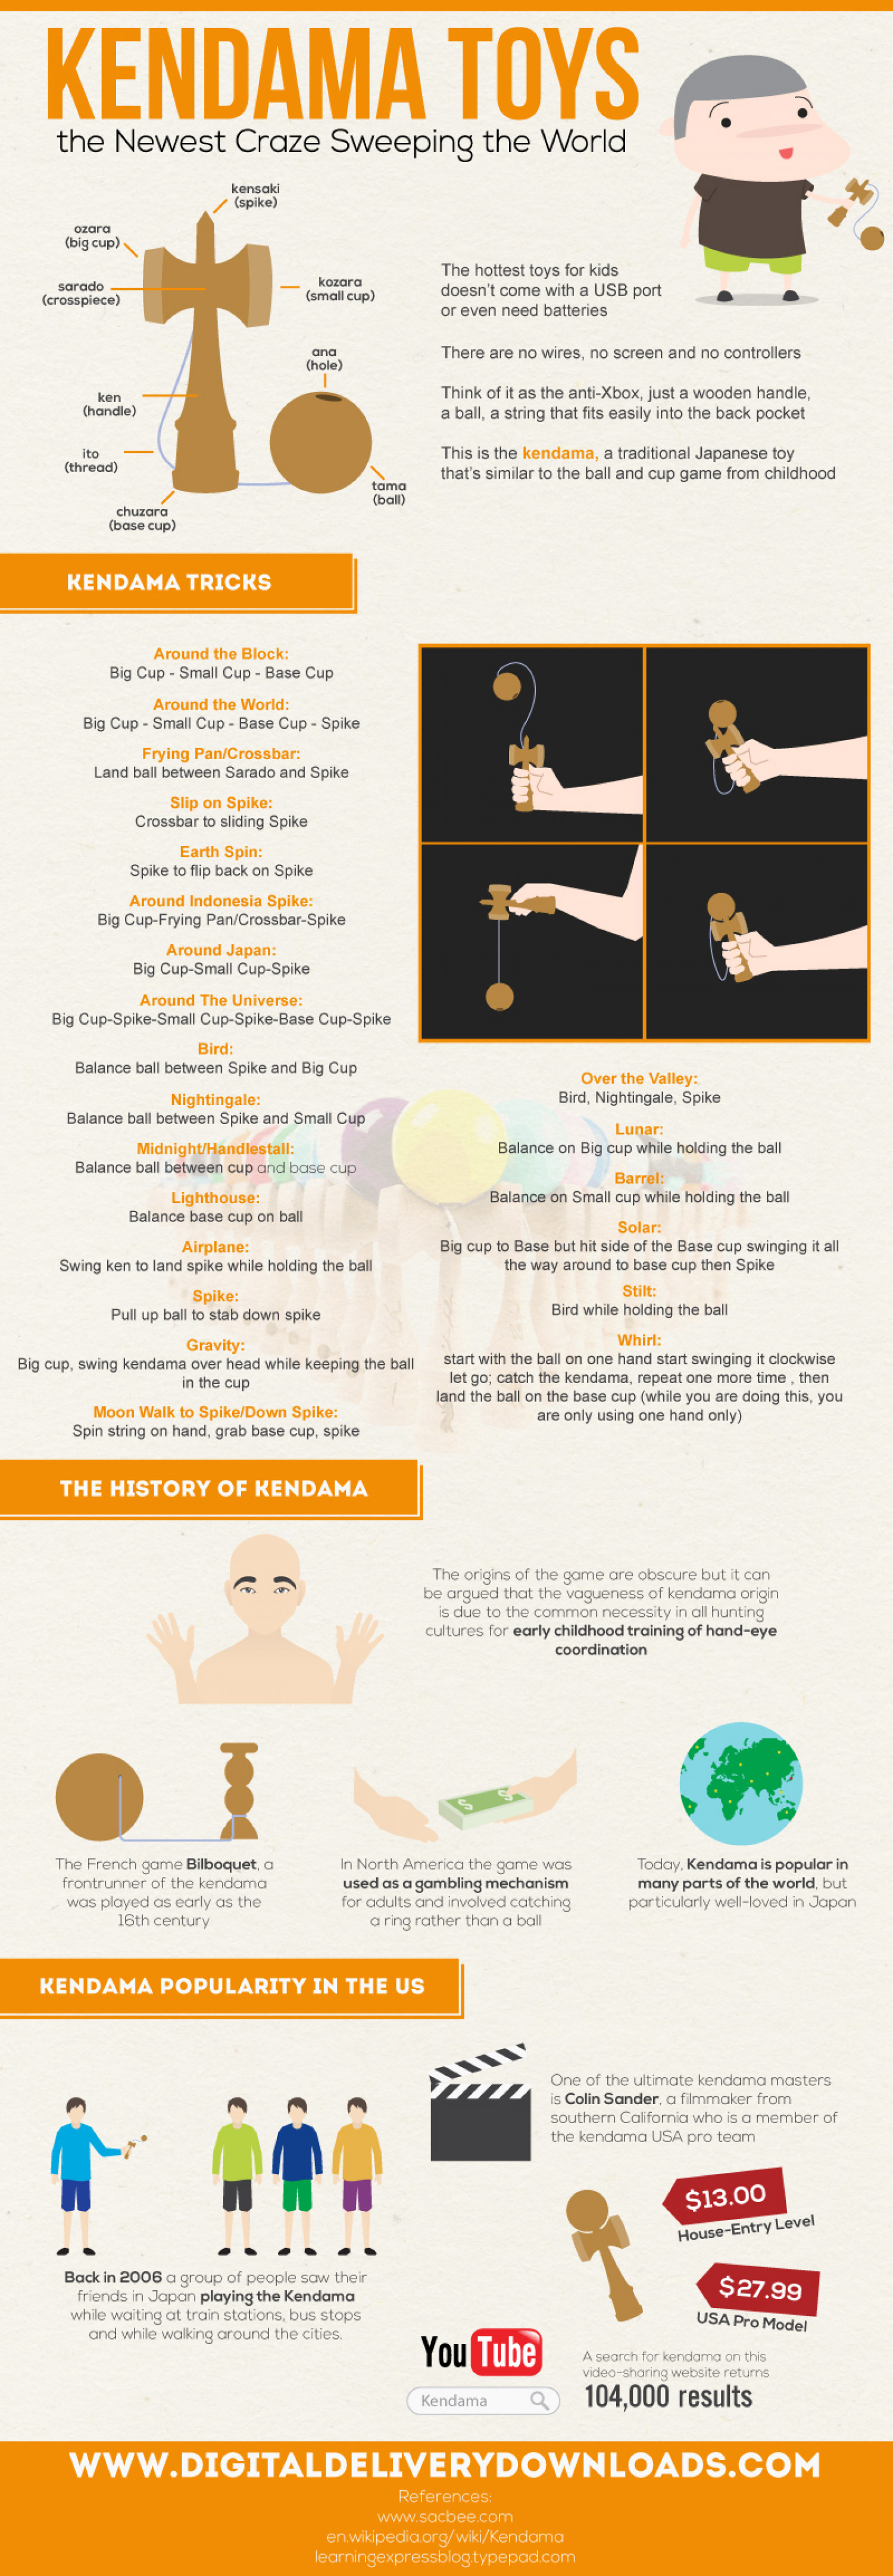 Kendama Toys: The Newest Craze Sweeping The World Infographic